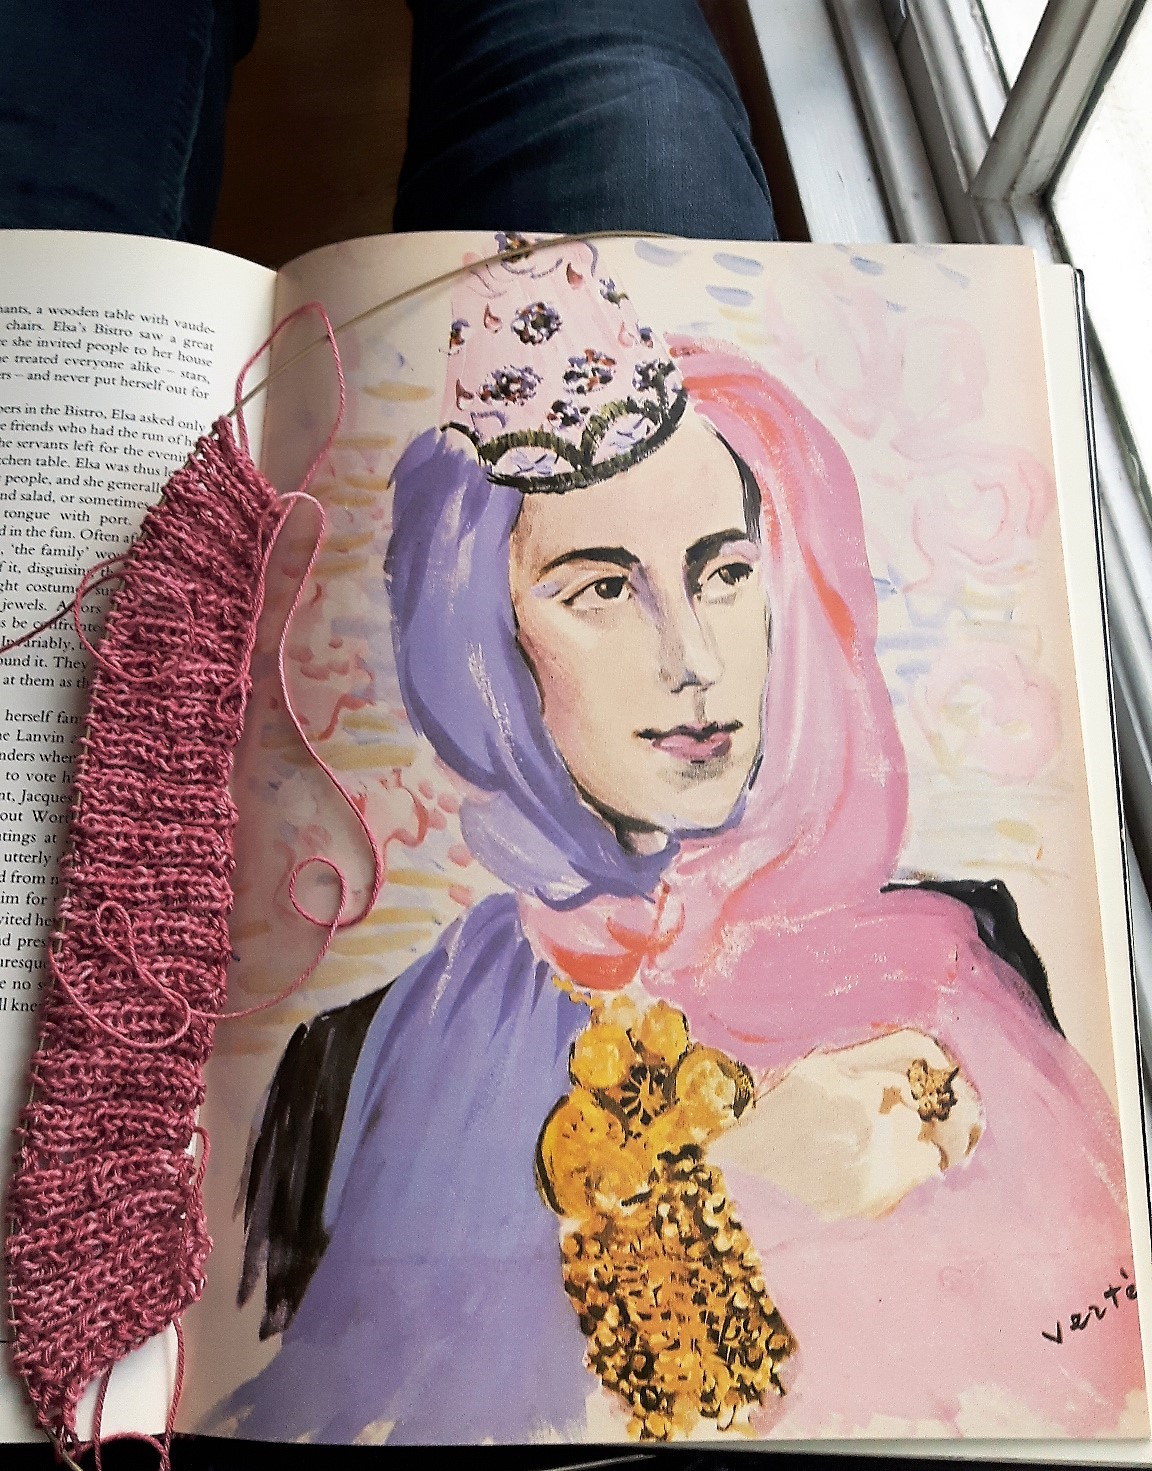 Multitasking: Reading a book on fashion designer Elsa Schiaparelli while knitting a jumper from a 1940s pattern. Photograph: Nelleke Honcoop.